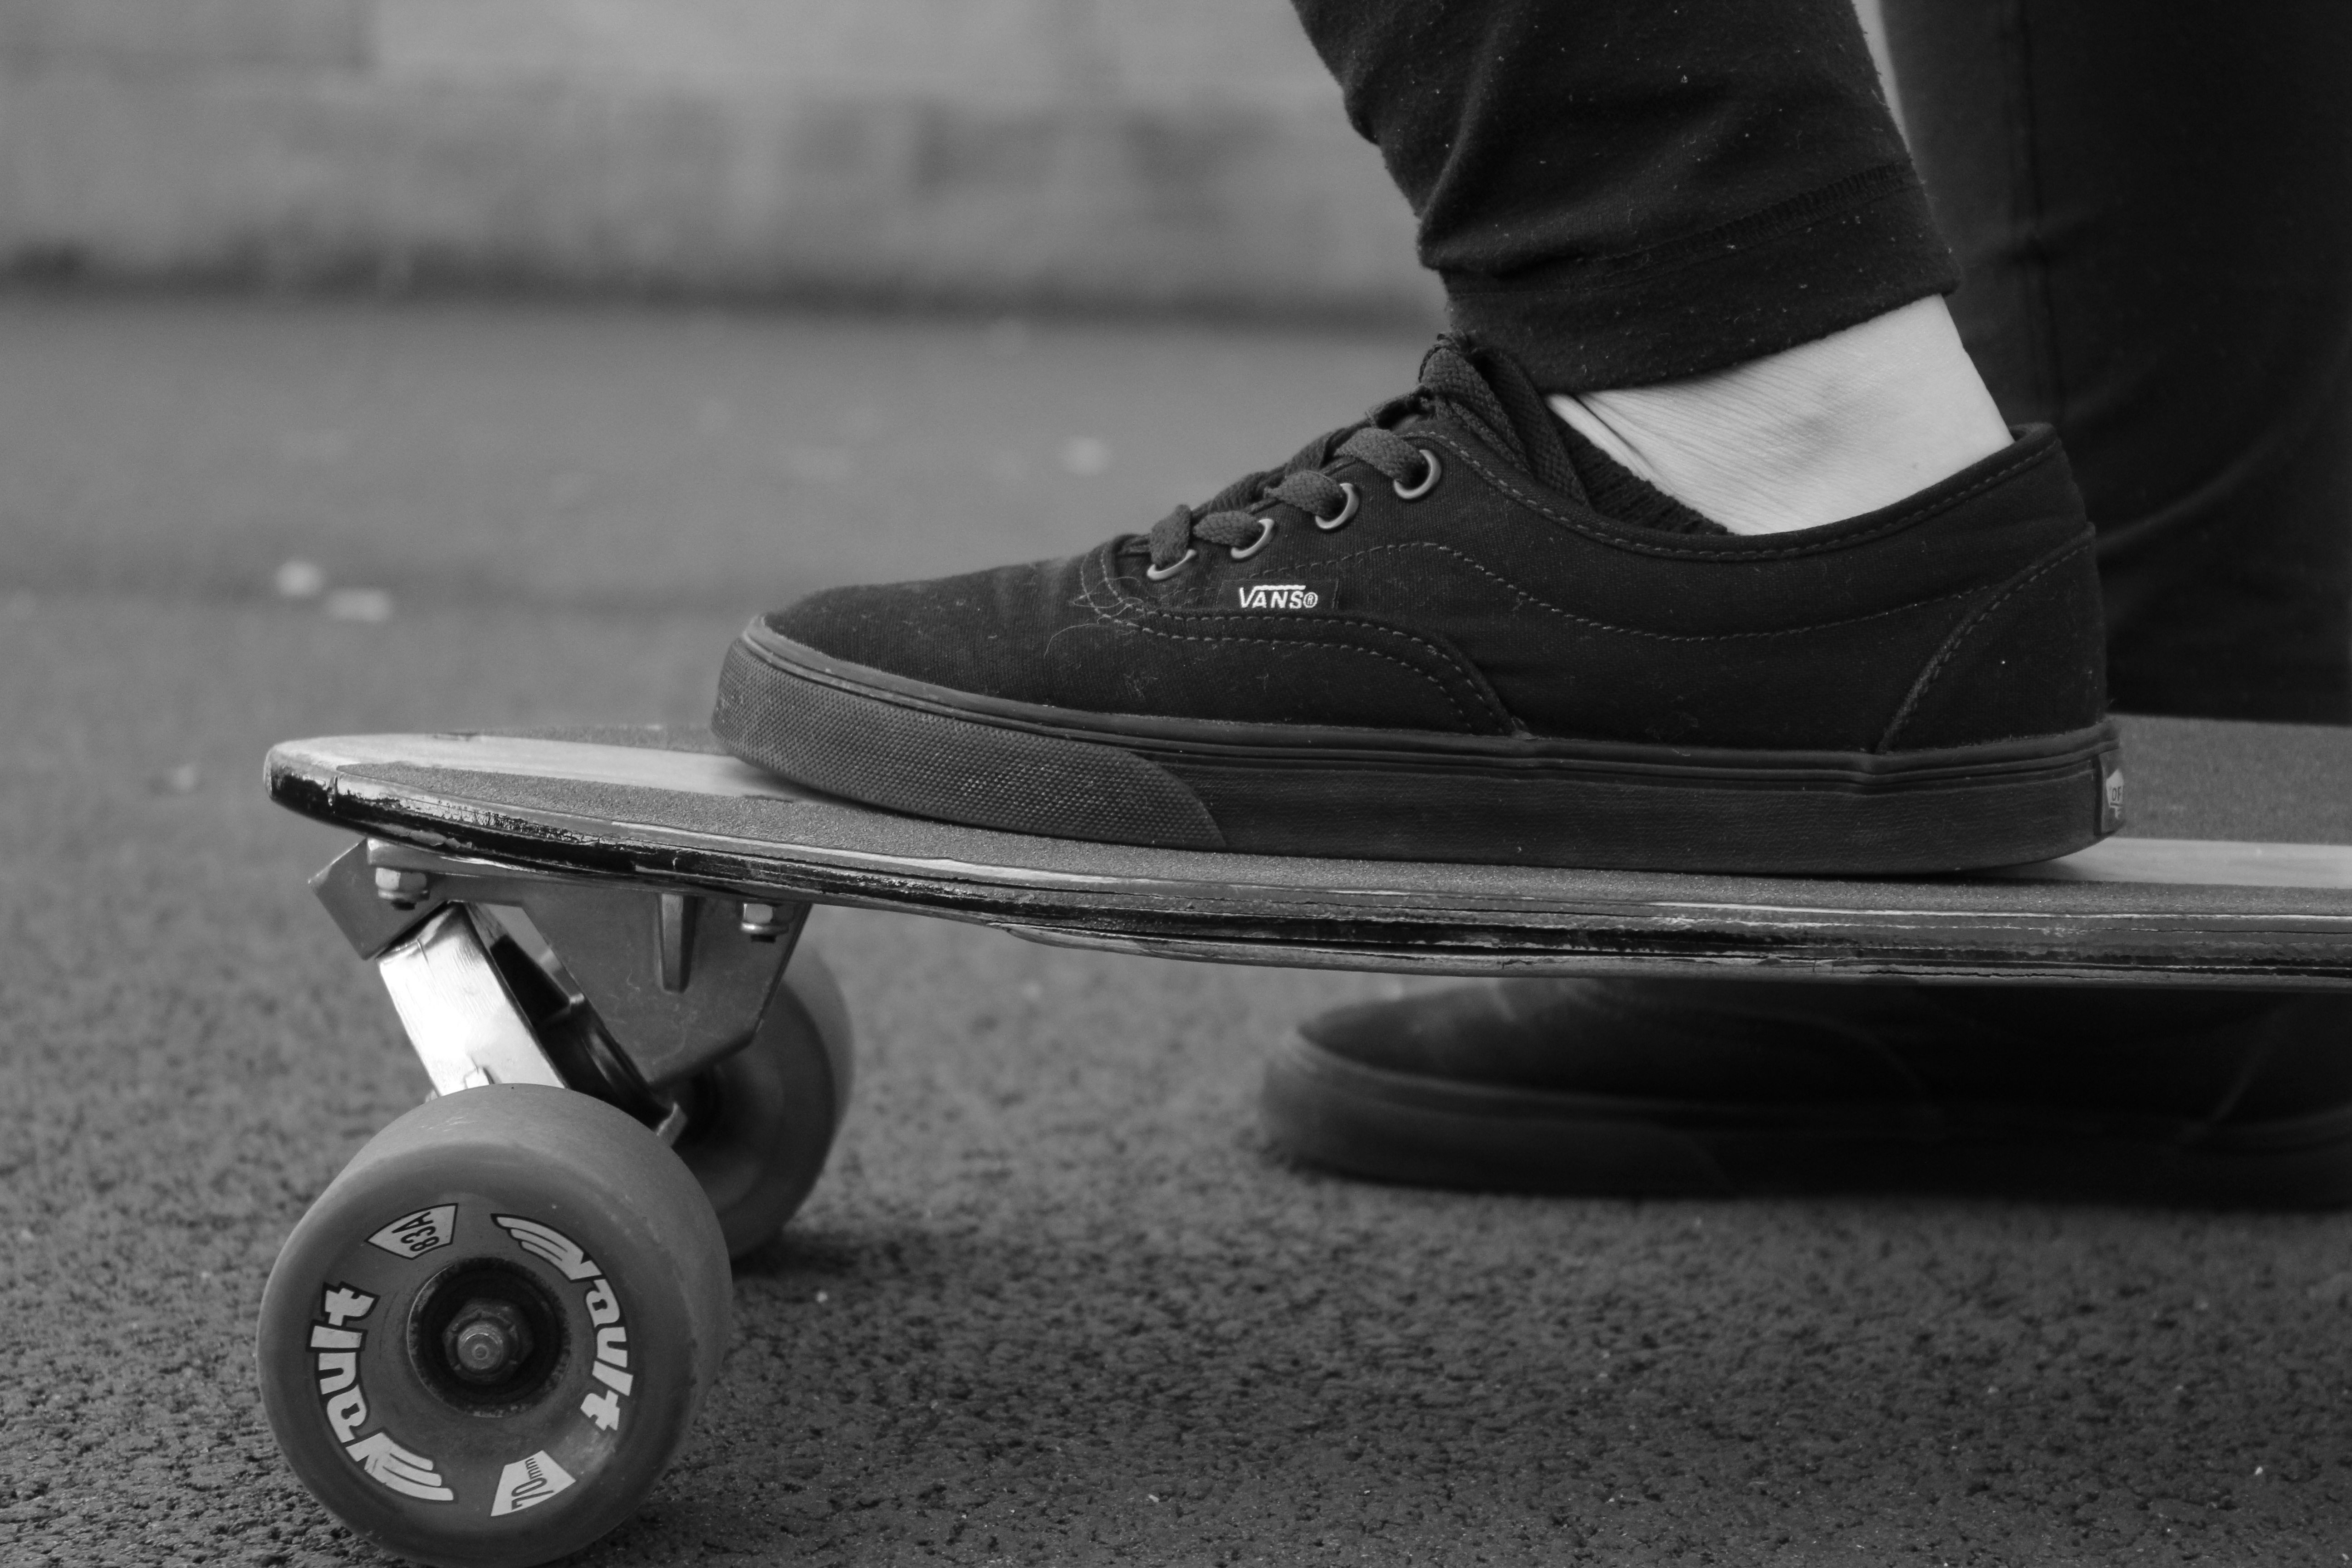 Vans Shoes and skate free image download